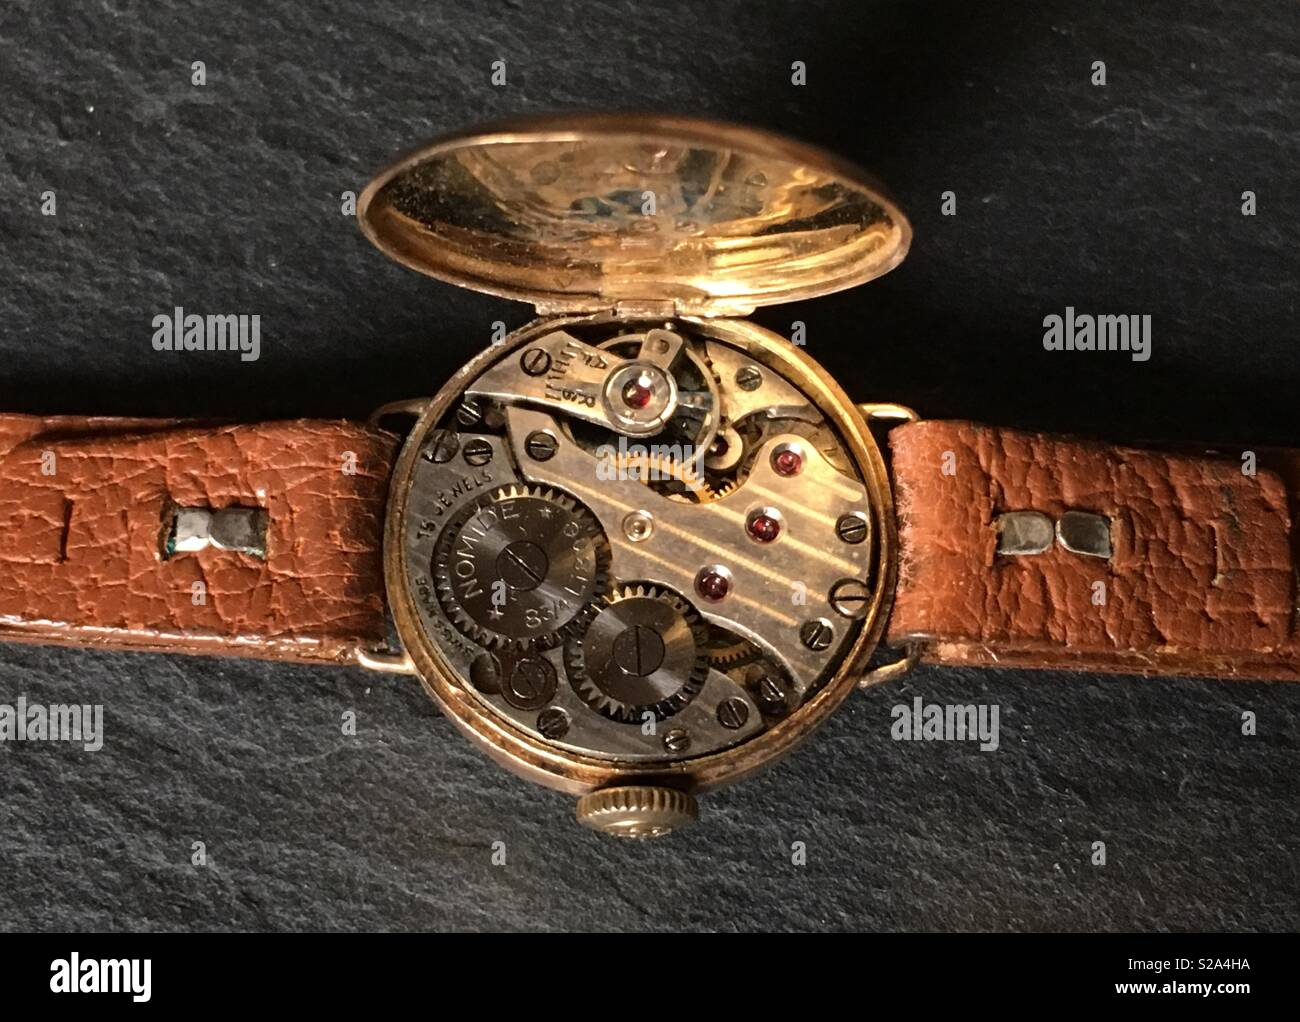 Vintage mechanical Wristwatch movement in 9ct Yellow Gold Case and leather strap close up - Stock Image